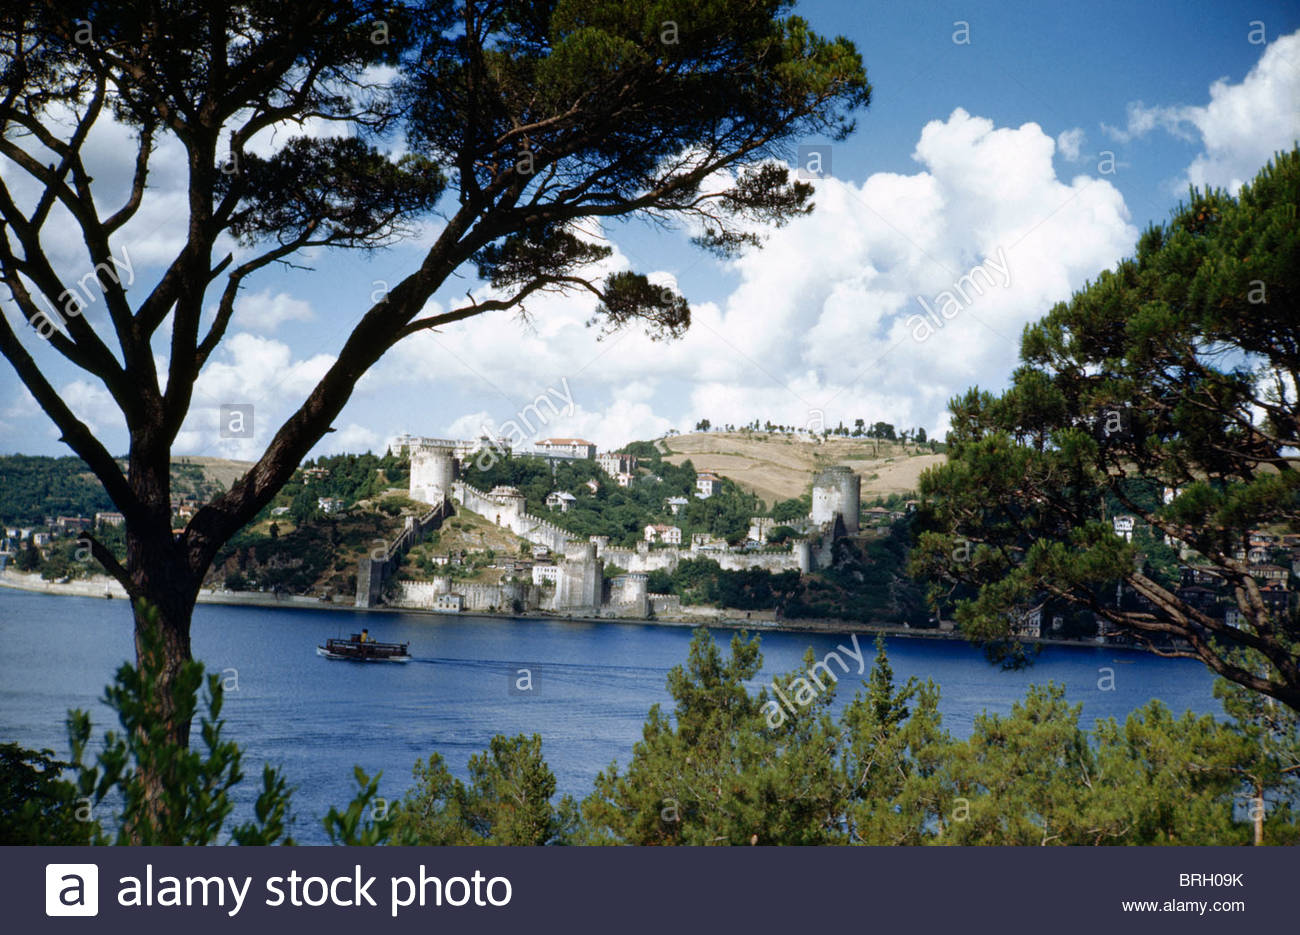 A boat plies the Bosporus near the ruins of Rumeli Hissar fortress. - Stock Image